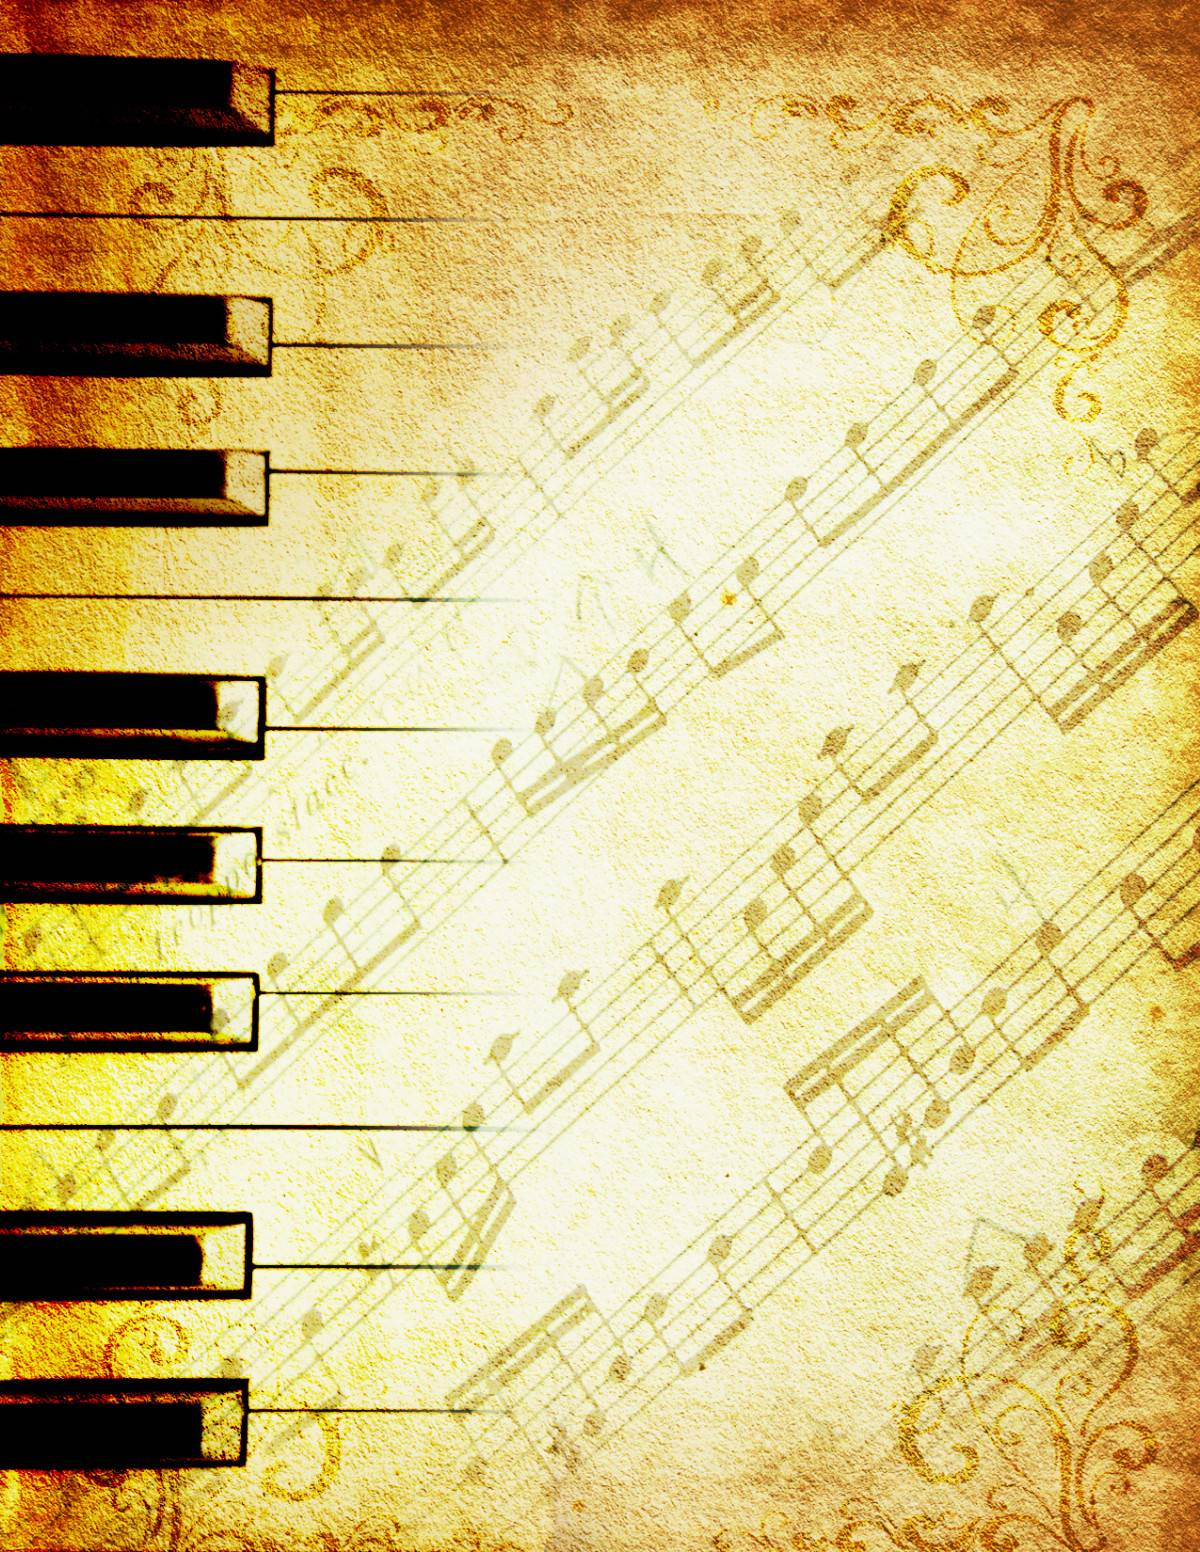 music background backgrounds piano classical clipart hd cliparts note desktop clip wallpapercave wallpapersafari theme suhu cool resource wallpaperget library